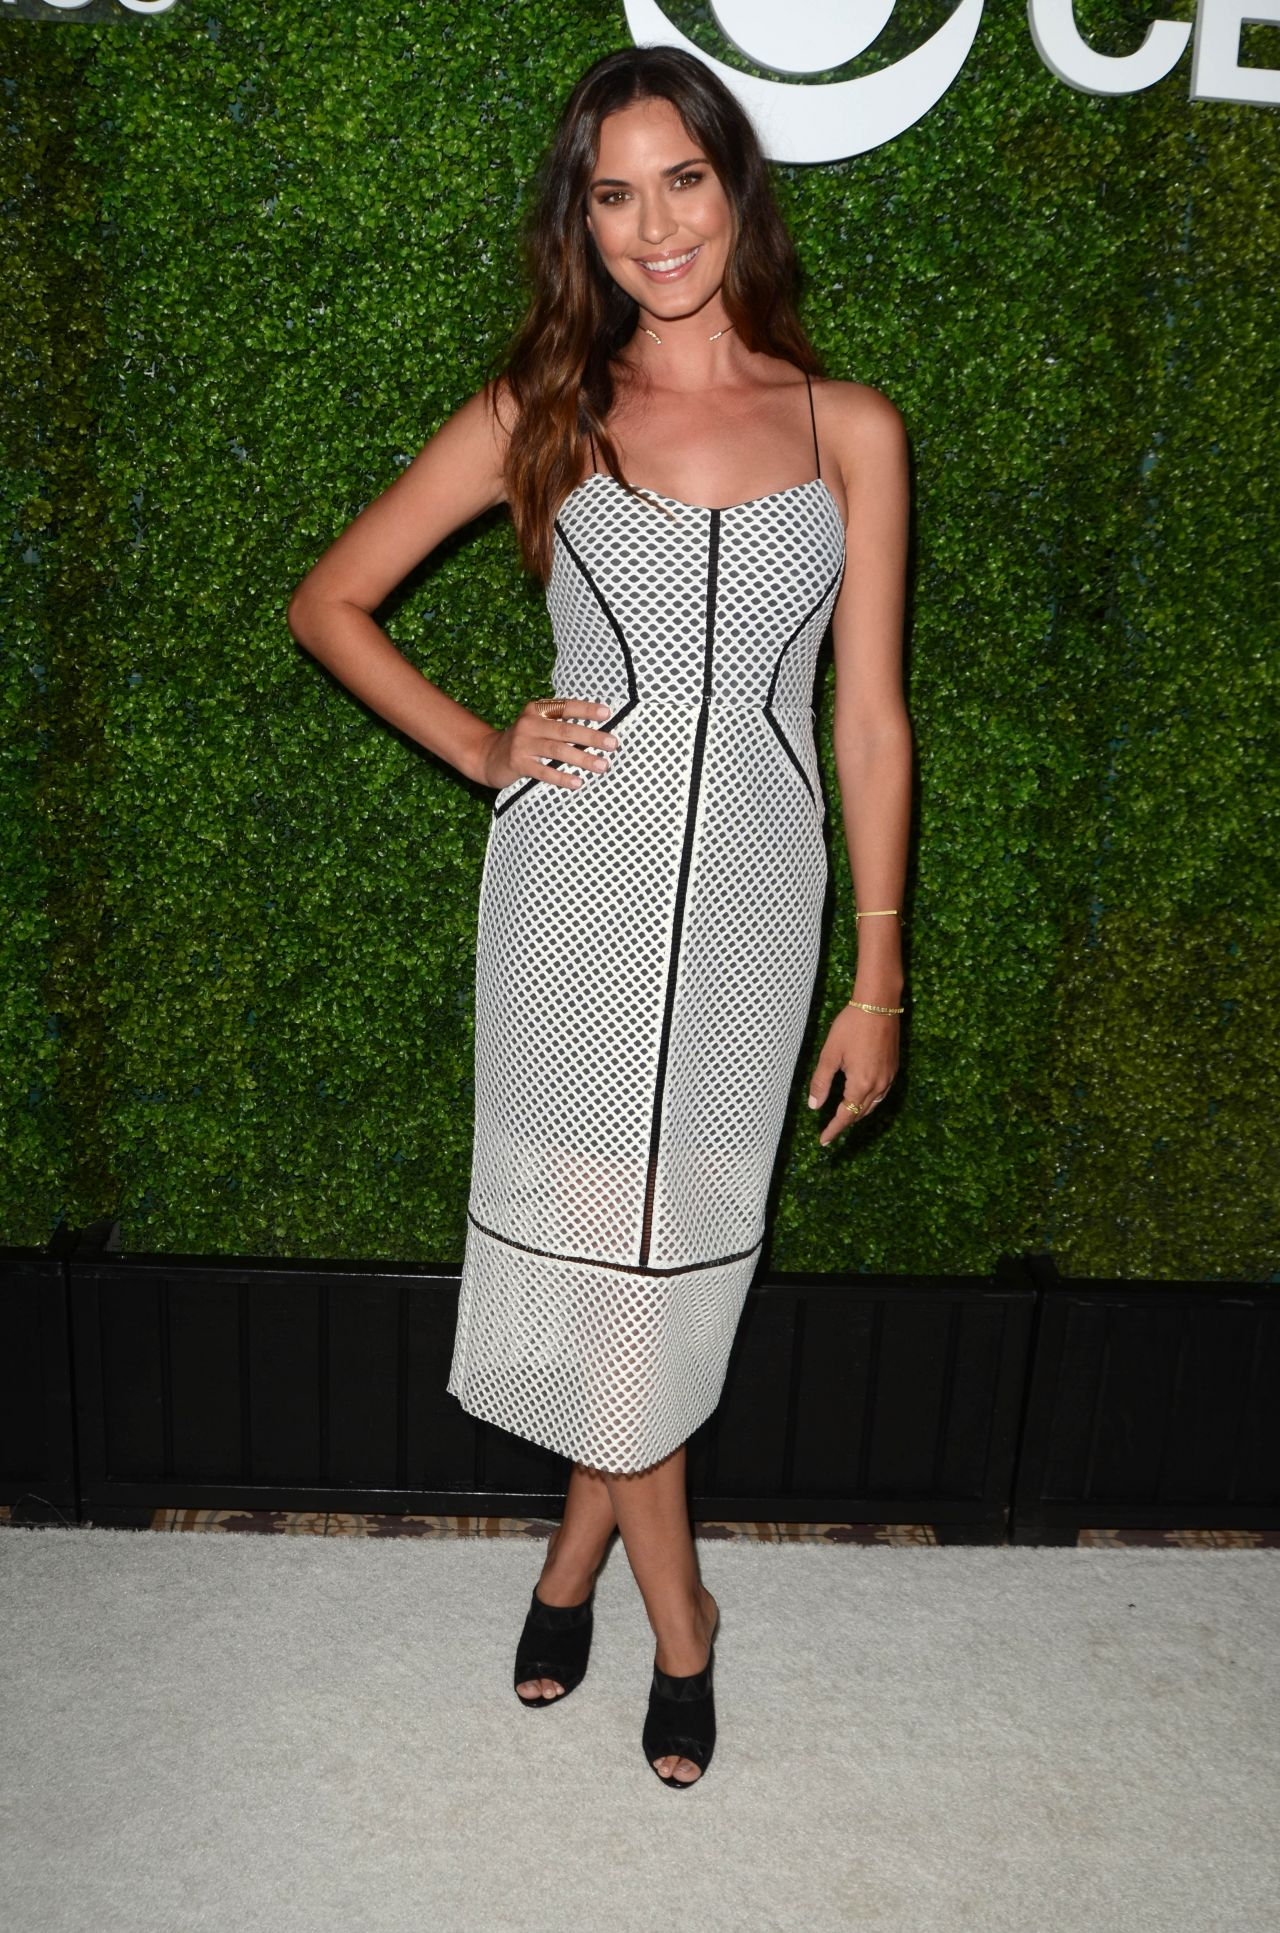 Odette Annable Cbs Television Studios Summer Soiree In